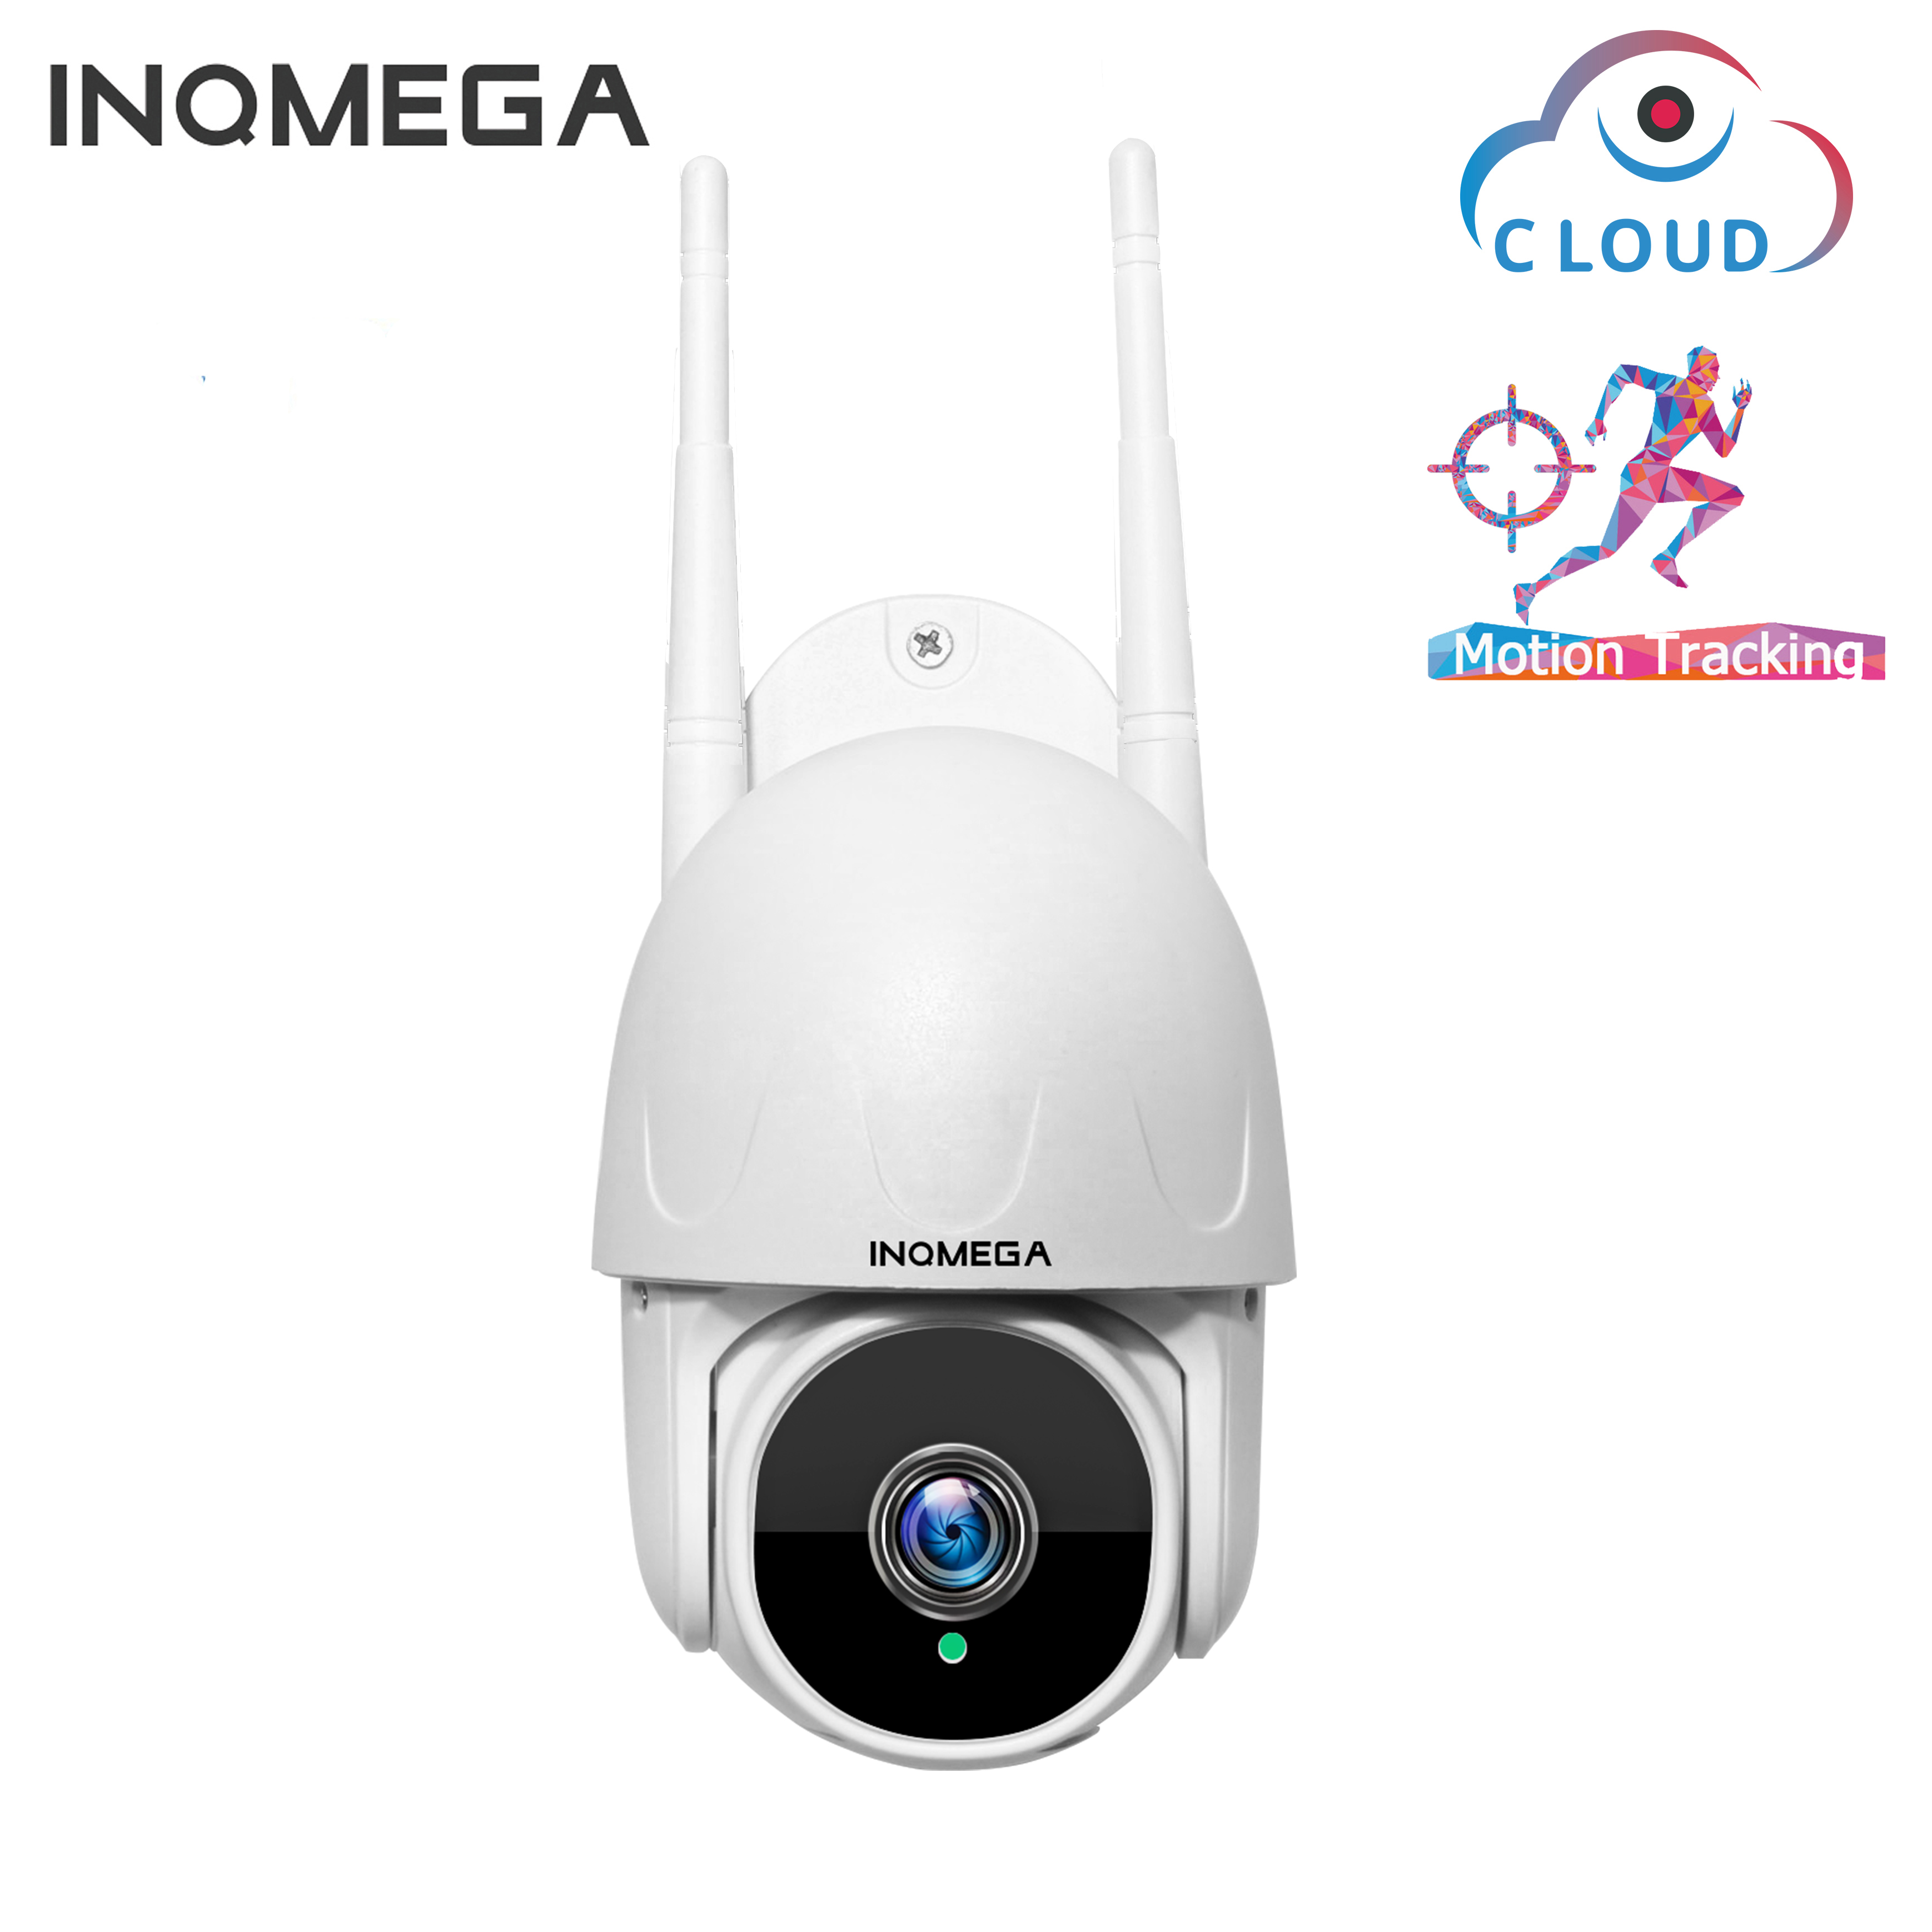 INQMEGA 1 Zoll Cloud 1080P PTZ Speed Dome Wifi Kamera Outdoor 2MP Auto-Tracking Kamera Drahtlose Kamera Hause überwachung IP Cam